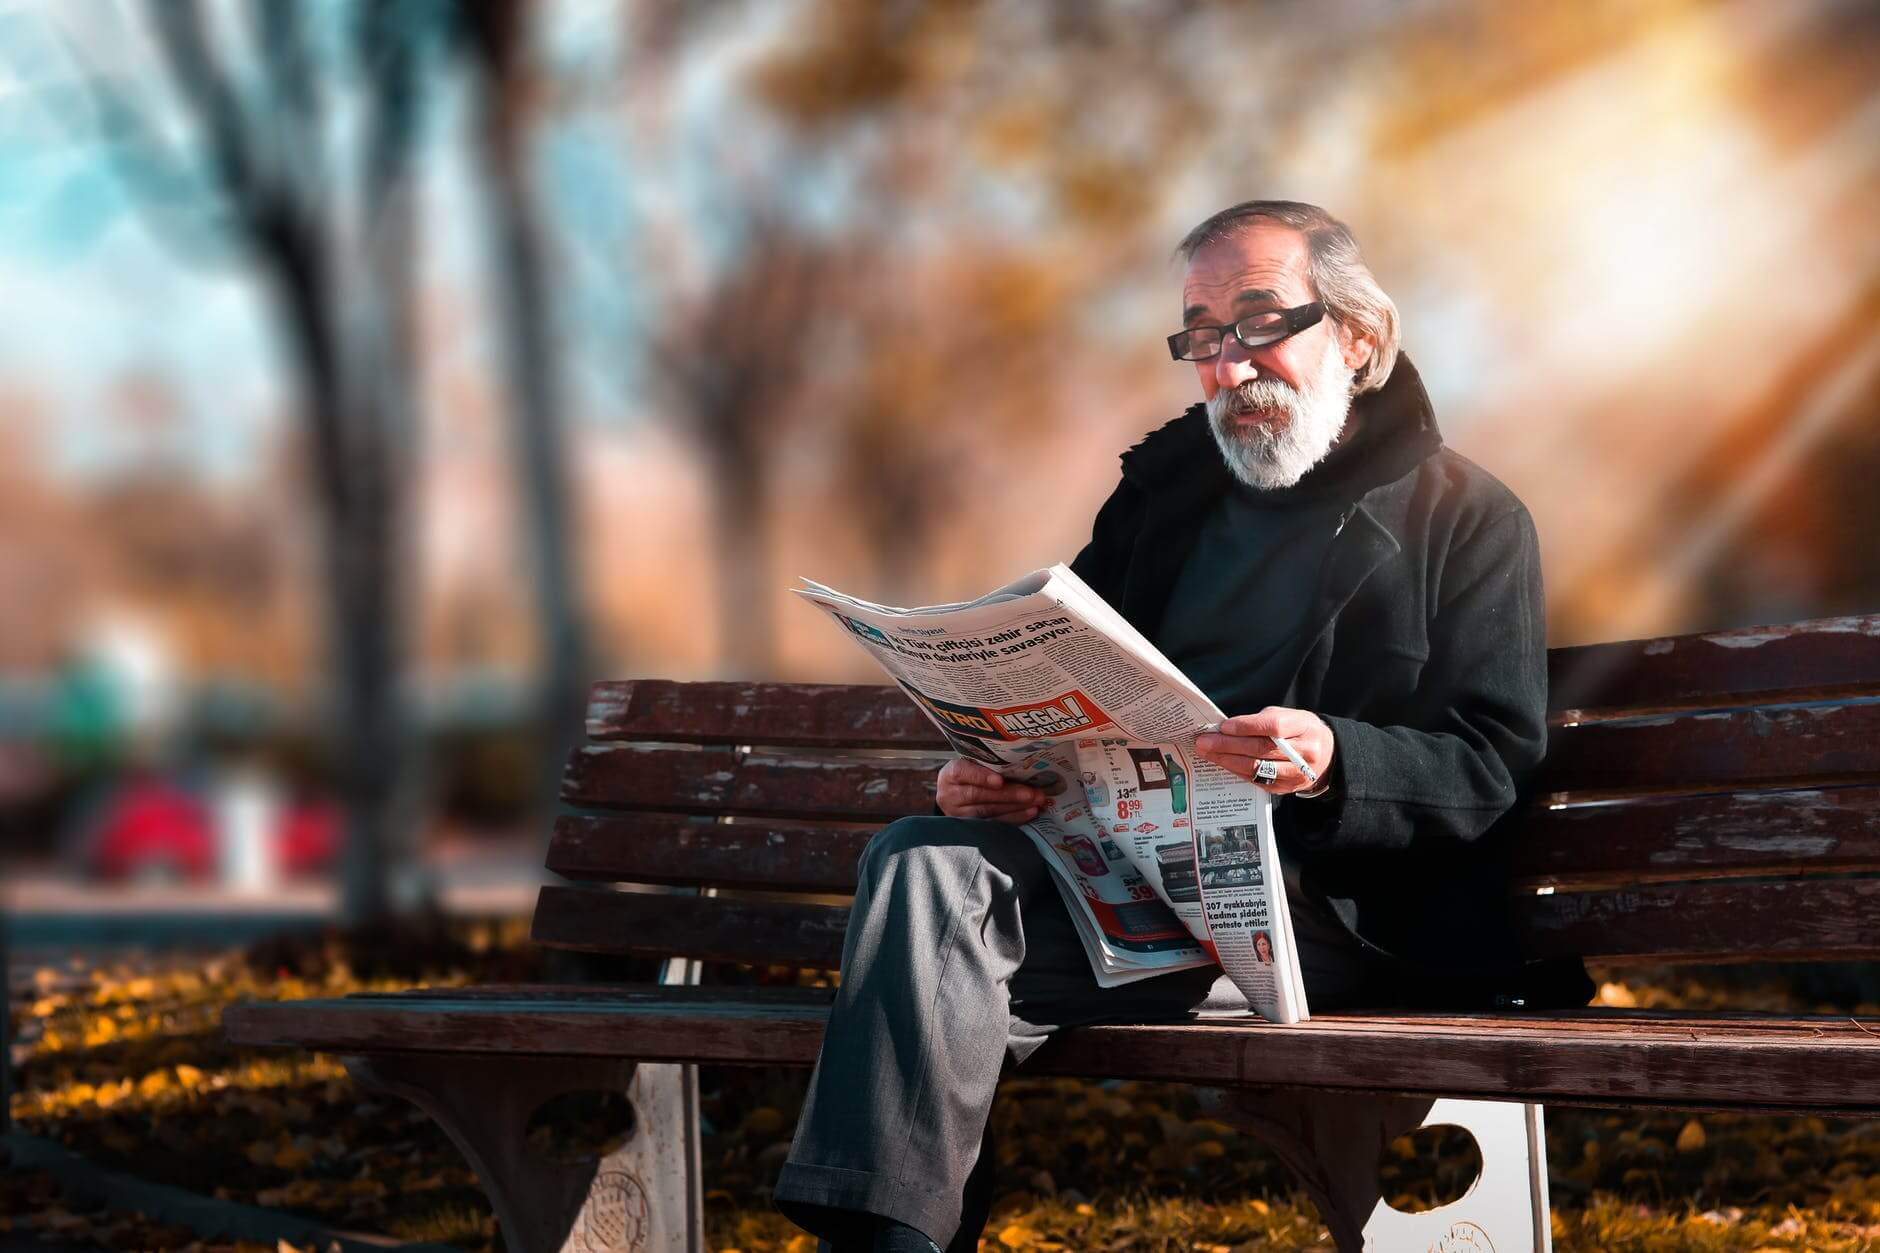 A man sitting on a bench reading a newspaper and learning about the benefits of reading as we age